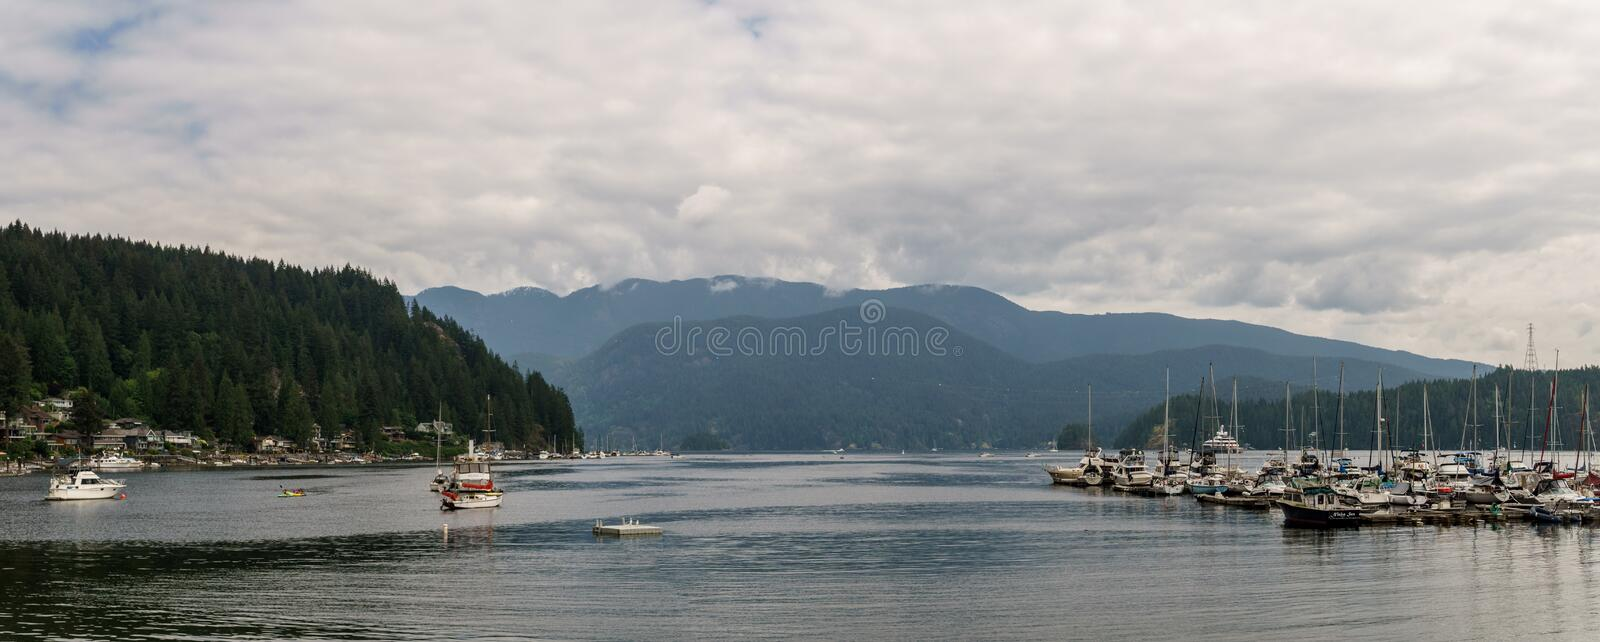 NORTH VANCOUVER, CANADA - May 21, 2018: View of Indian Arm with Yachts in Deep Cove.  stock photos